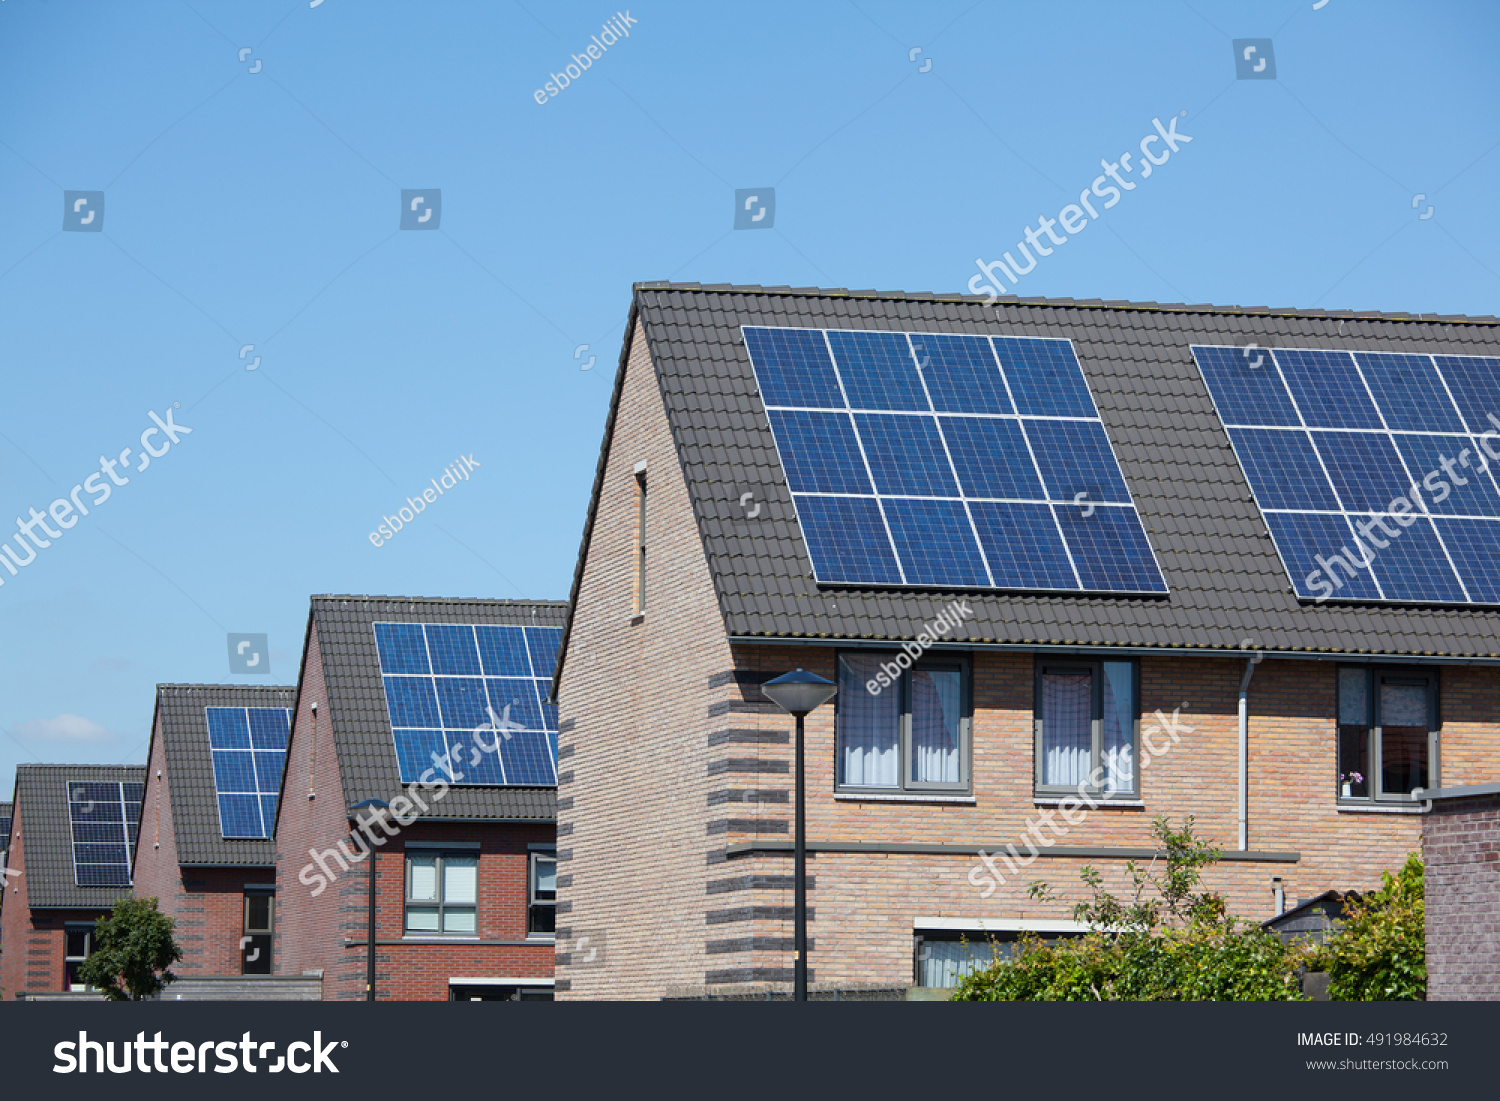 Modern Houses With Solar Panels On The Roof For